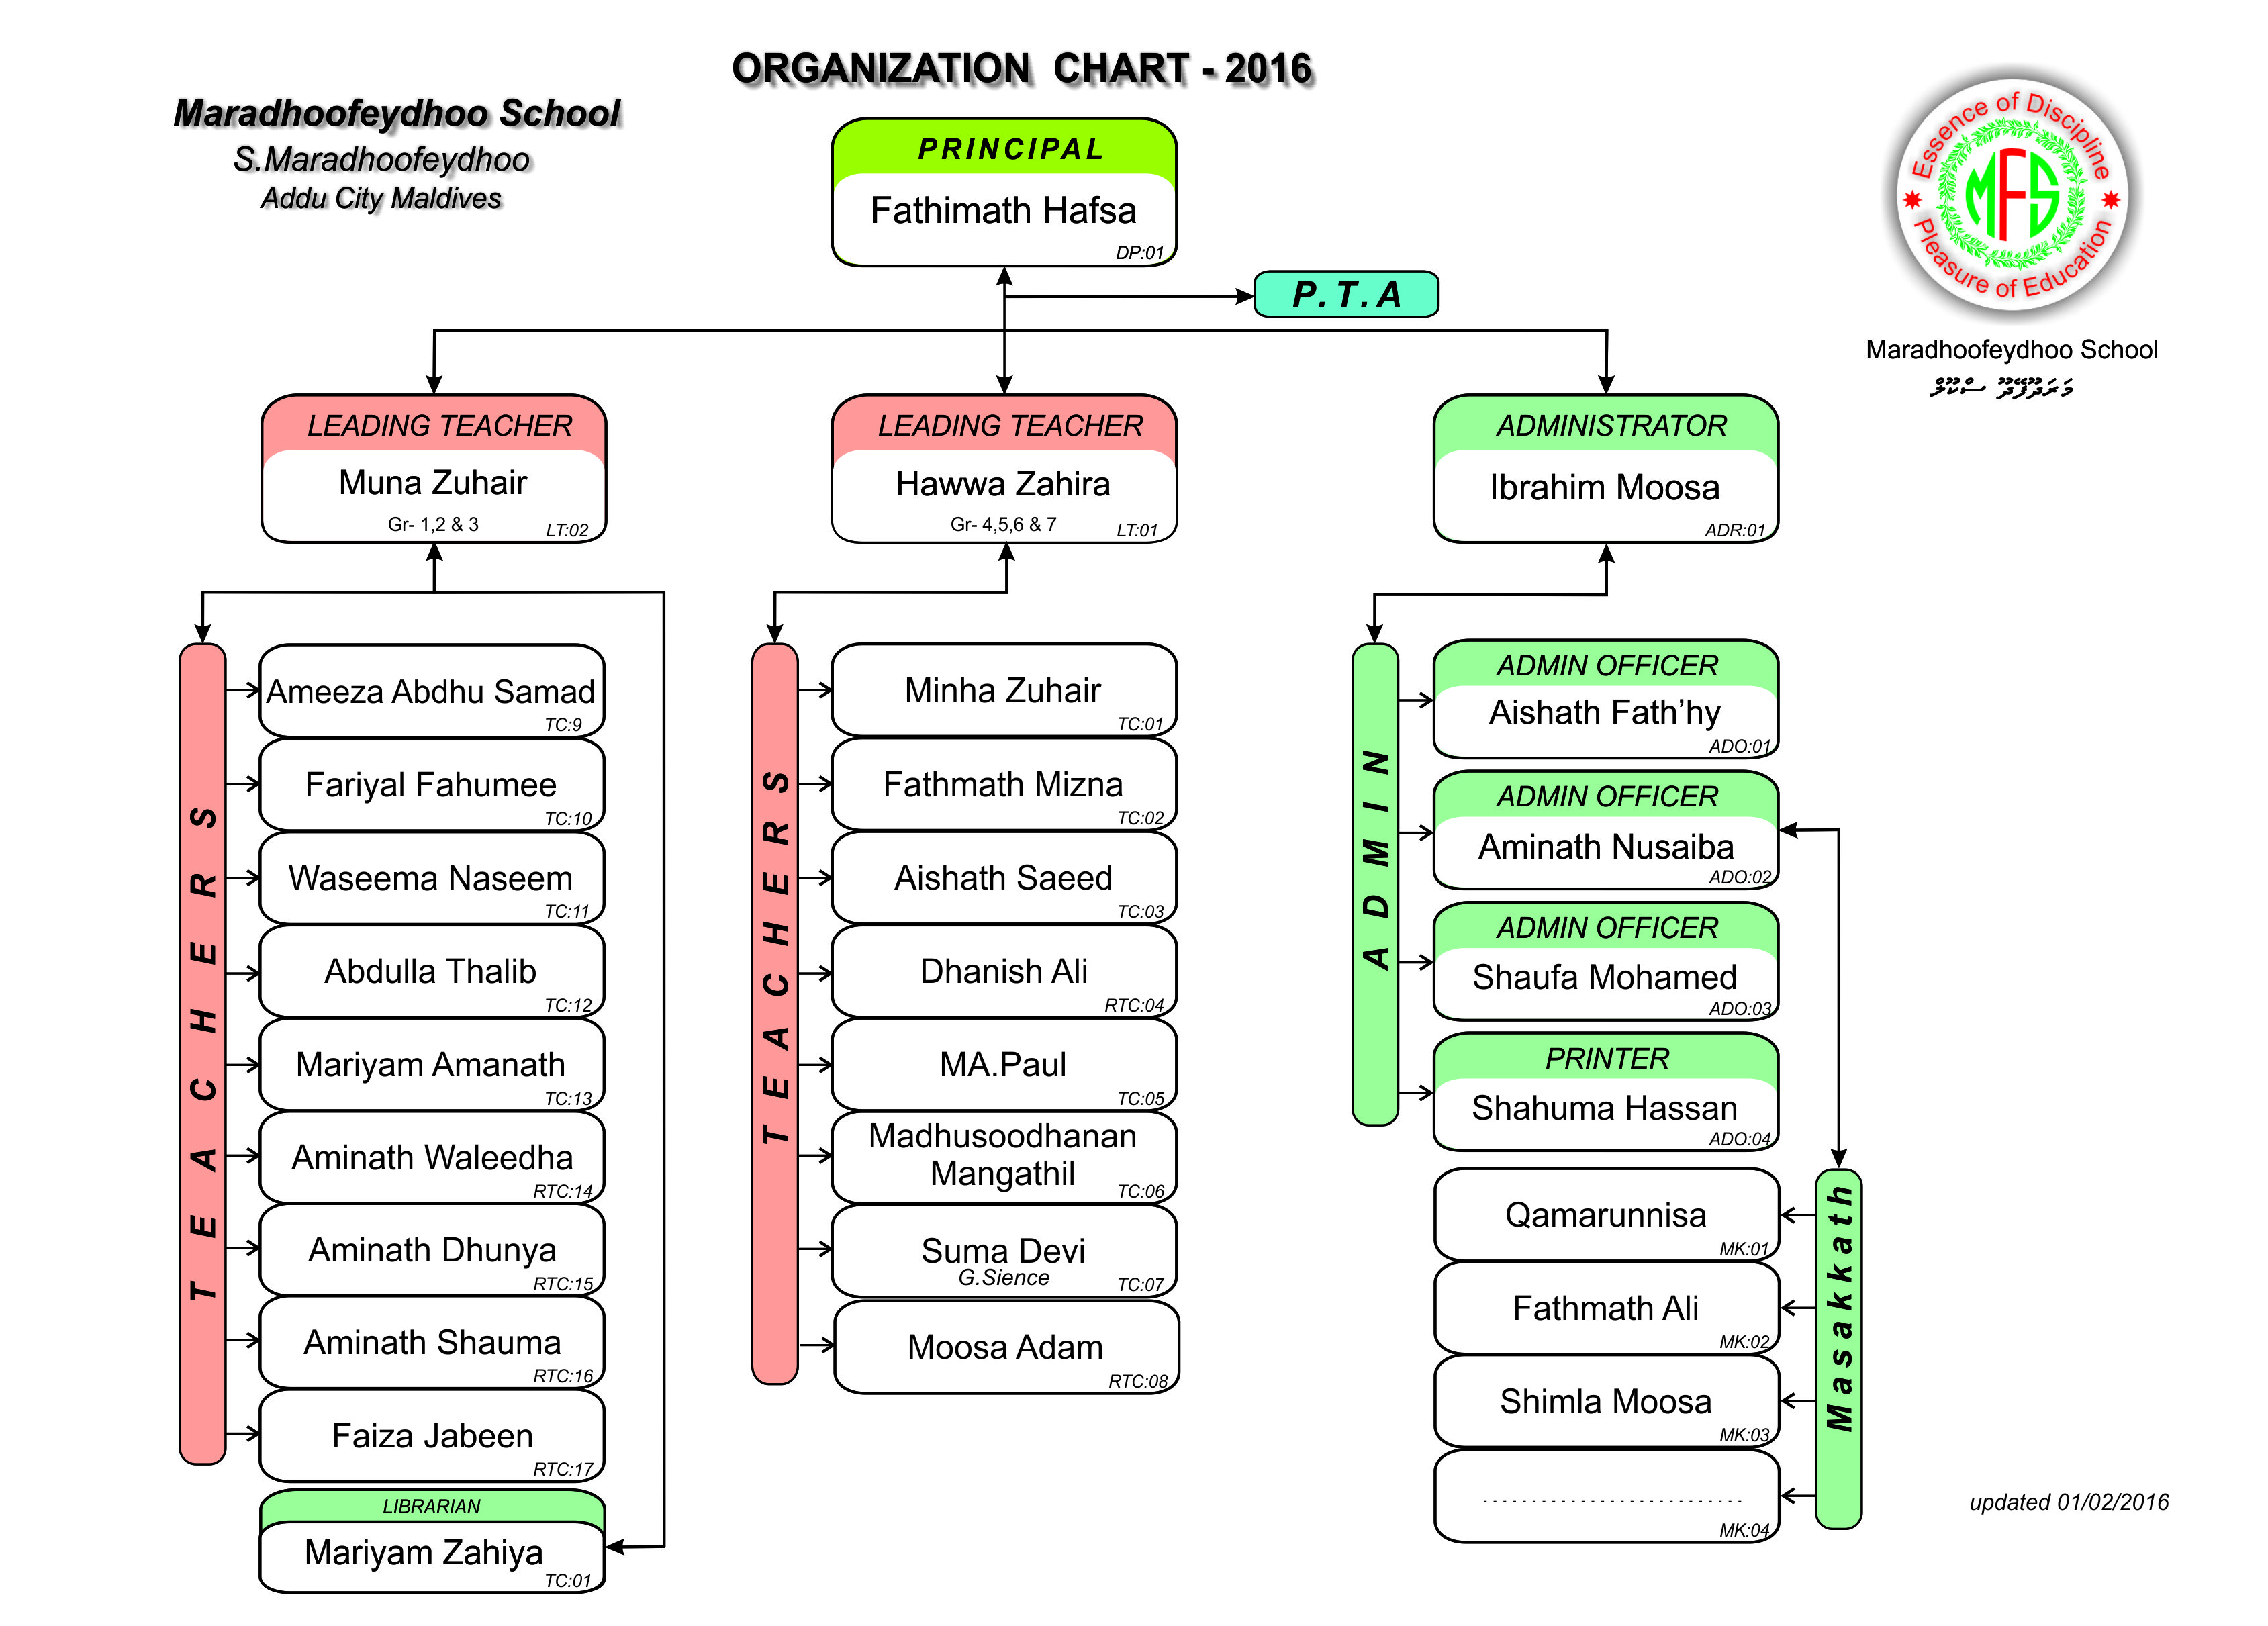 MF School Organization Chart 2016